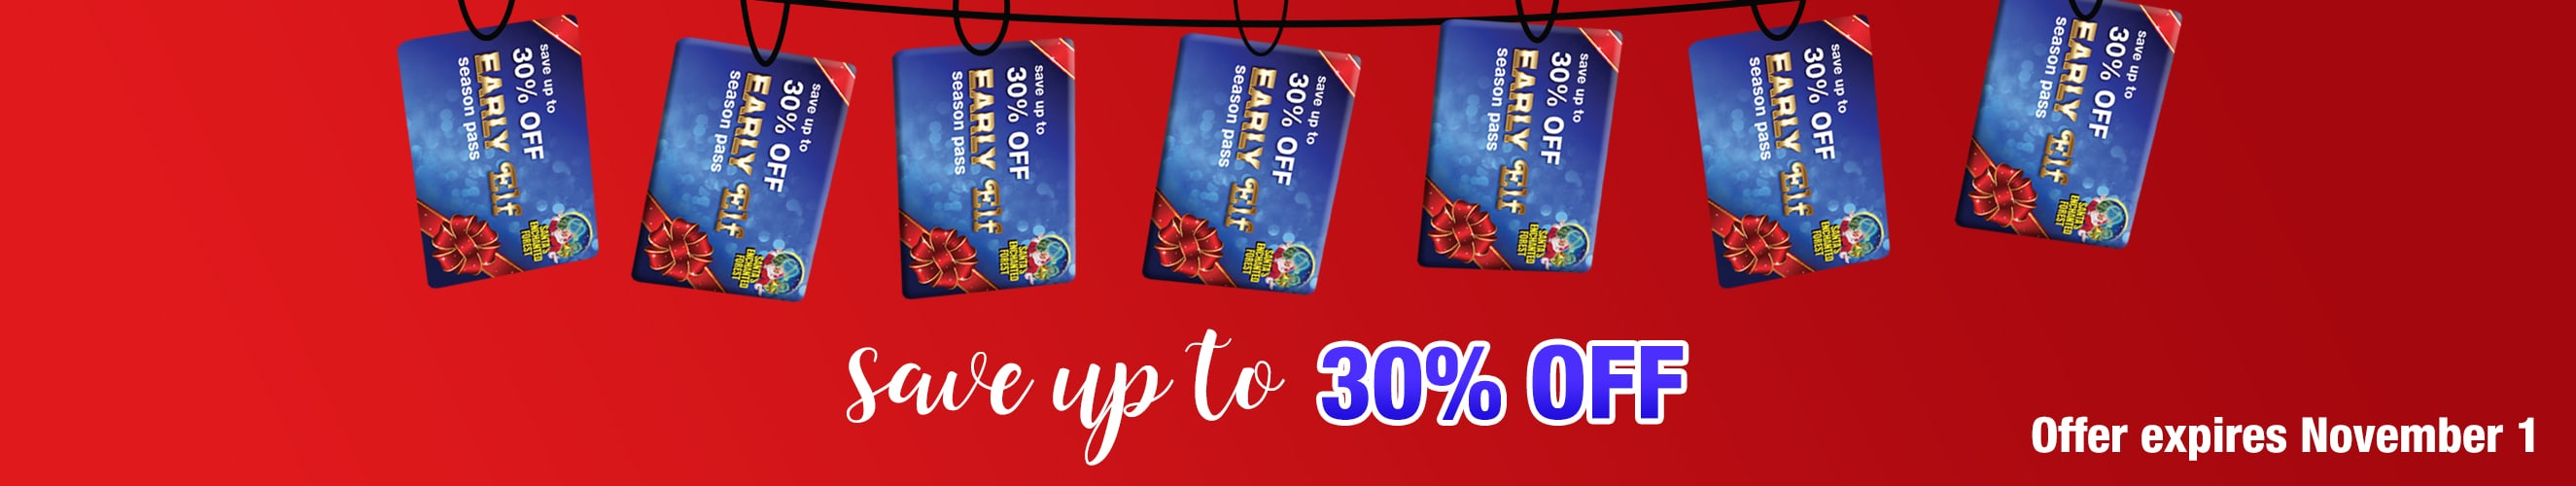 Buy Your Early Elf Season Pass and Save